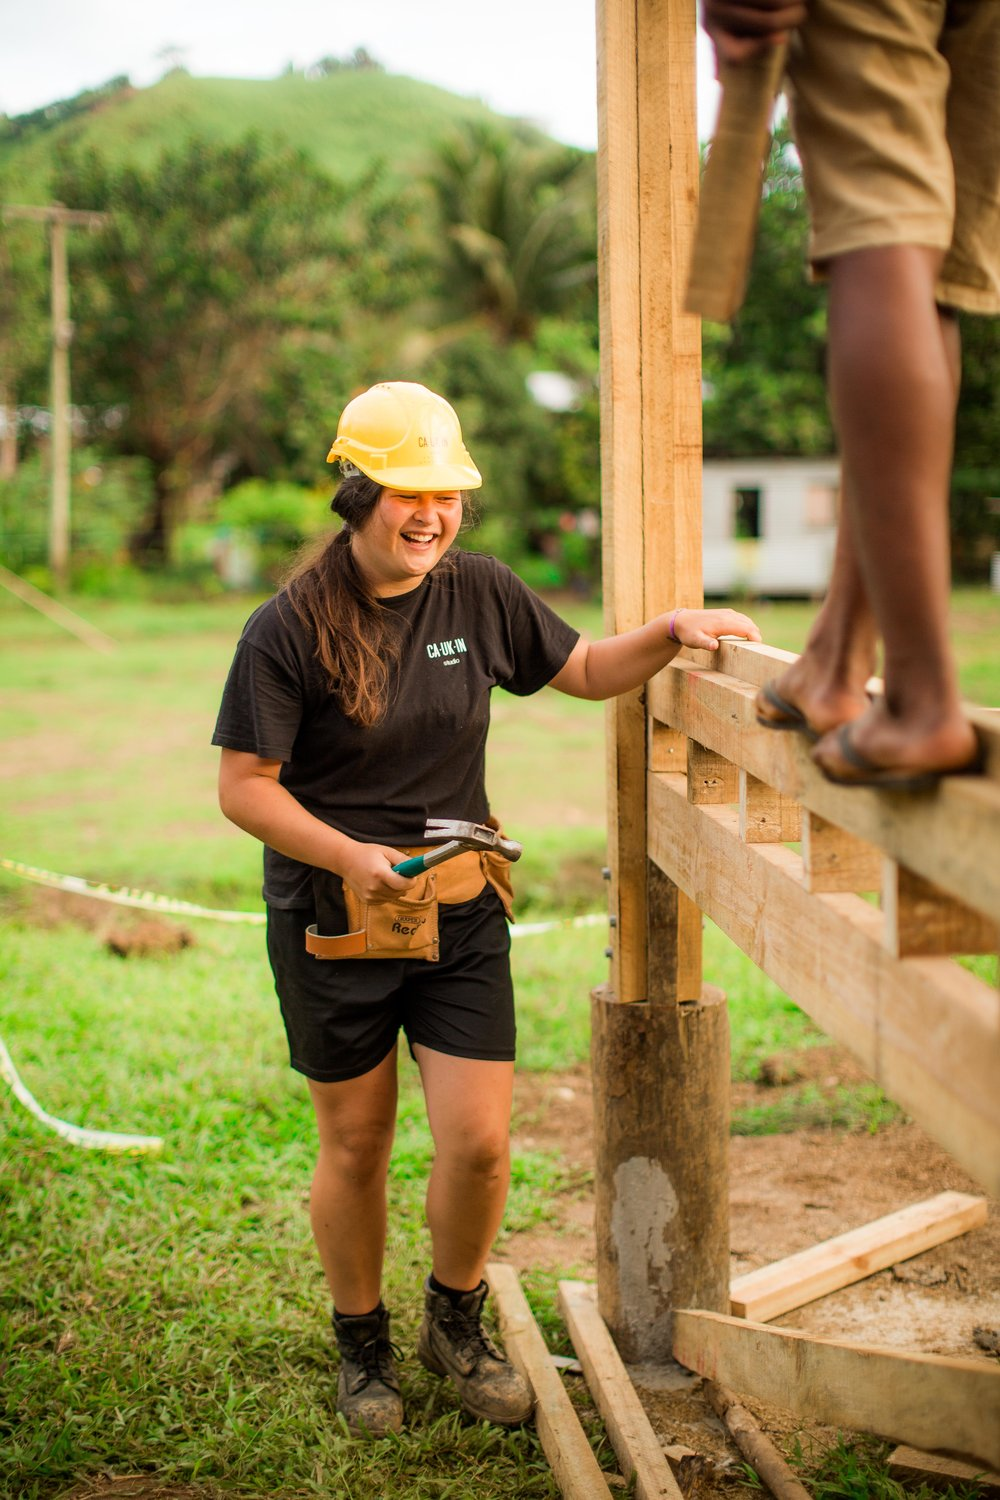 Project Manager Samantha. - Since impressing us as a Project Runner on the Savudrodro Community Hall project, Samantha has gone on to successfully project manage the Sierra Leone Slinky Playground in Massama, Sierra Leone.